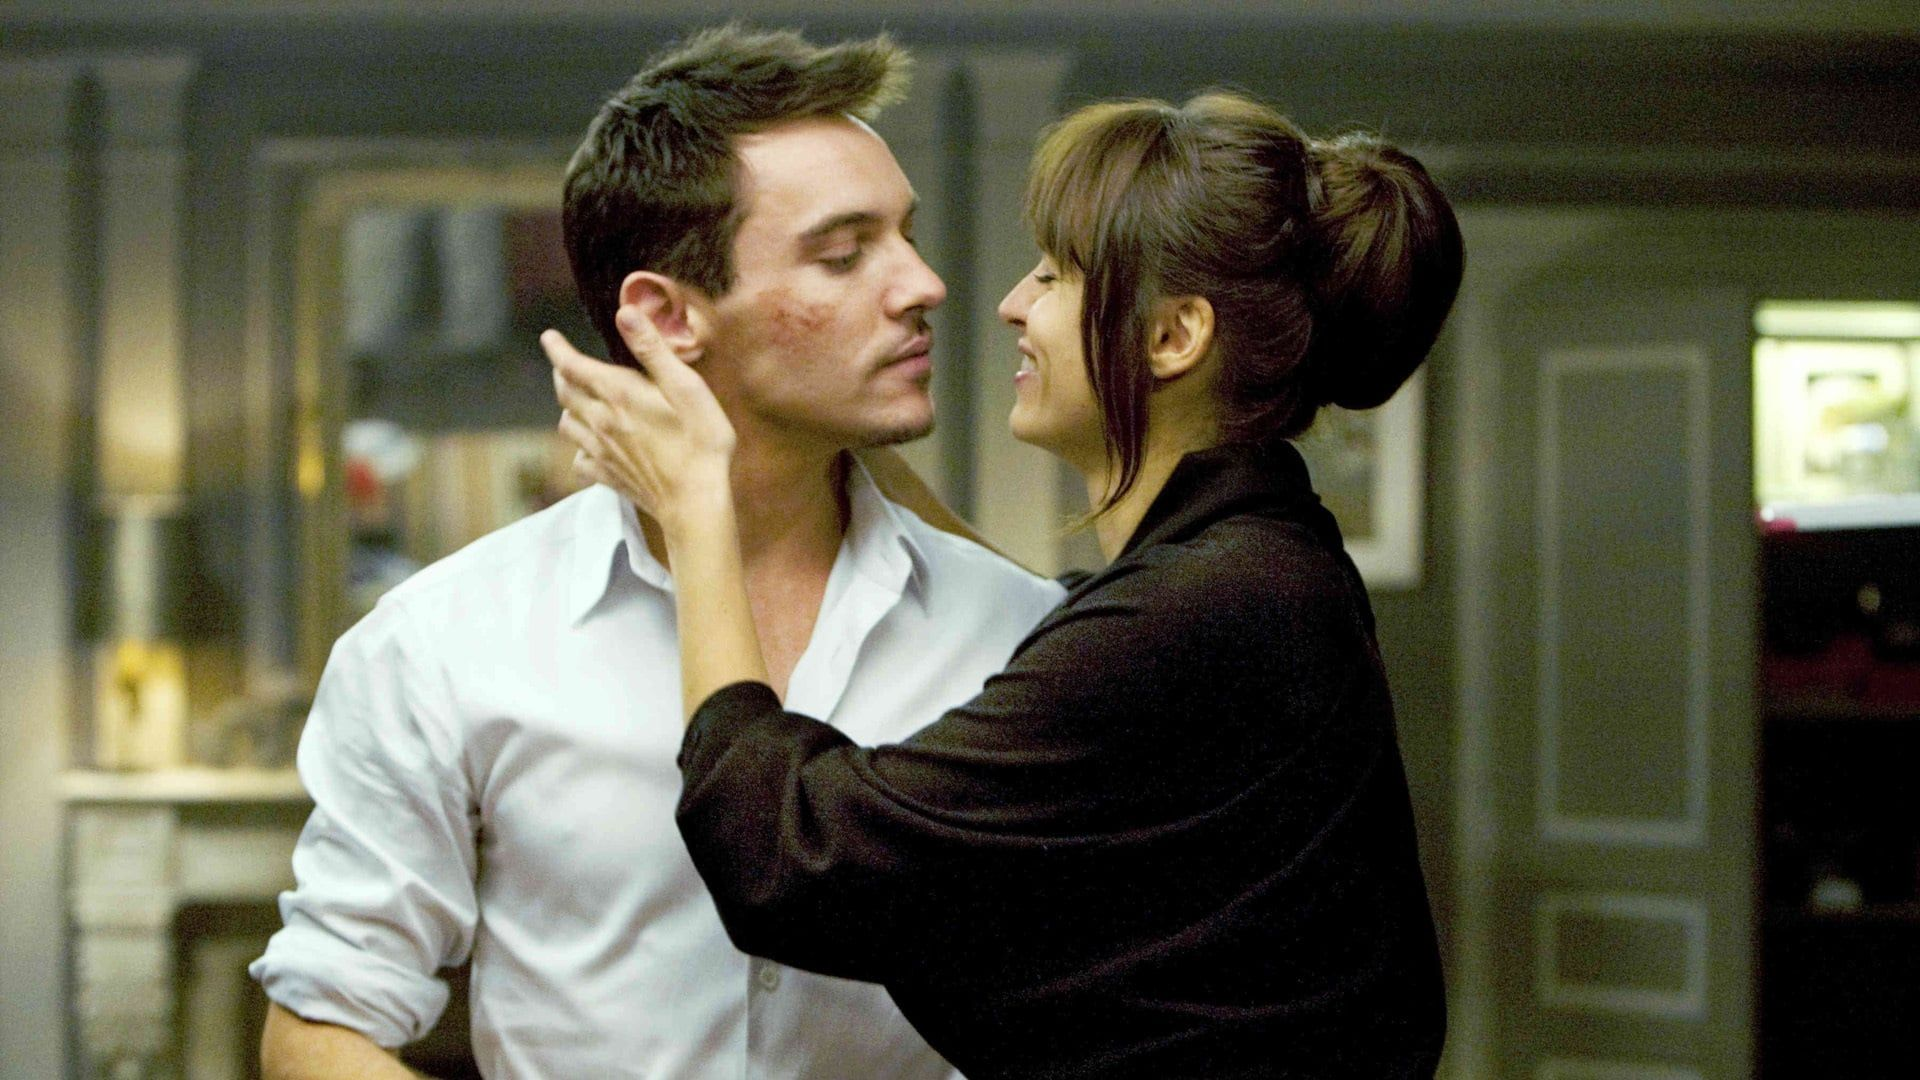 Altadefinizione From Paris With Love 2010 Streaming Ita Cb01 Film Completo Cinema Guarda From Paris With Paris Love Jonathan Rhys Meyers Free Movies Online